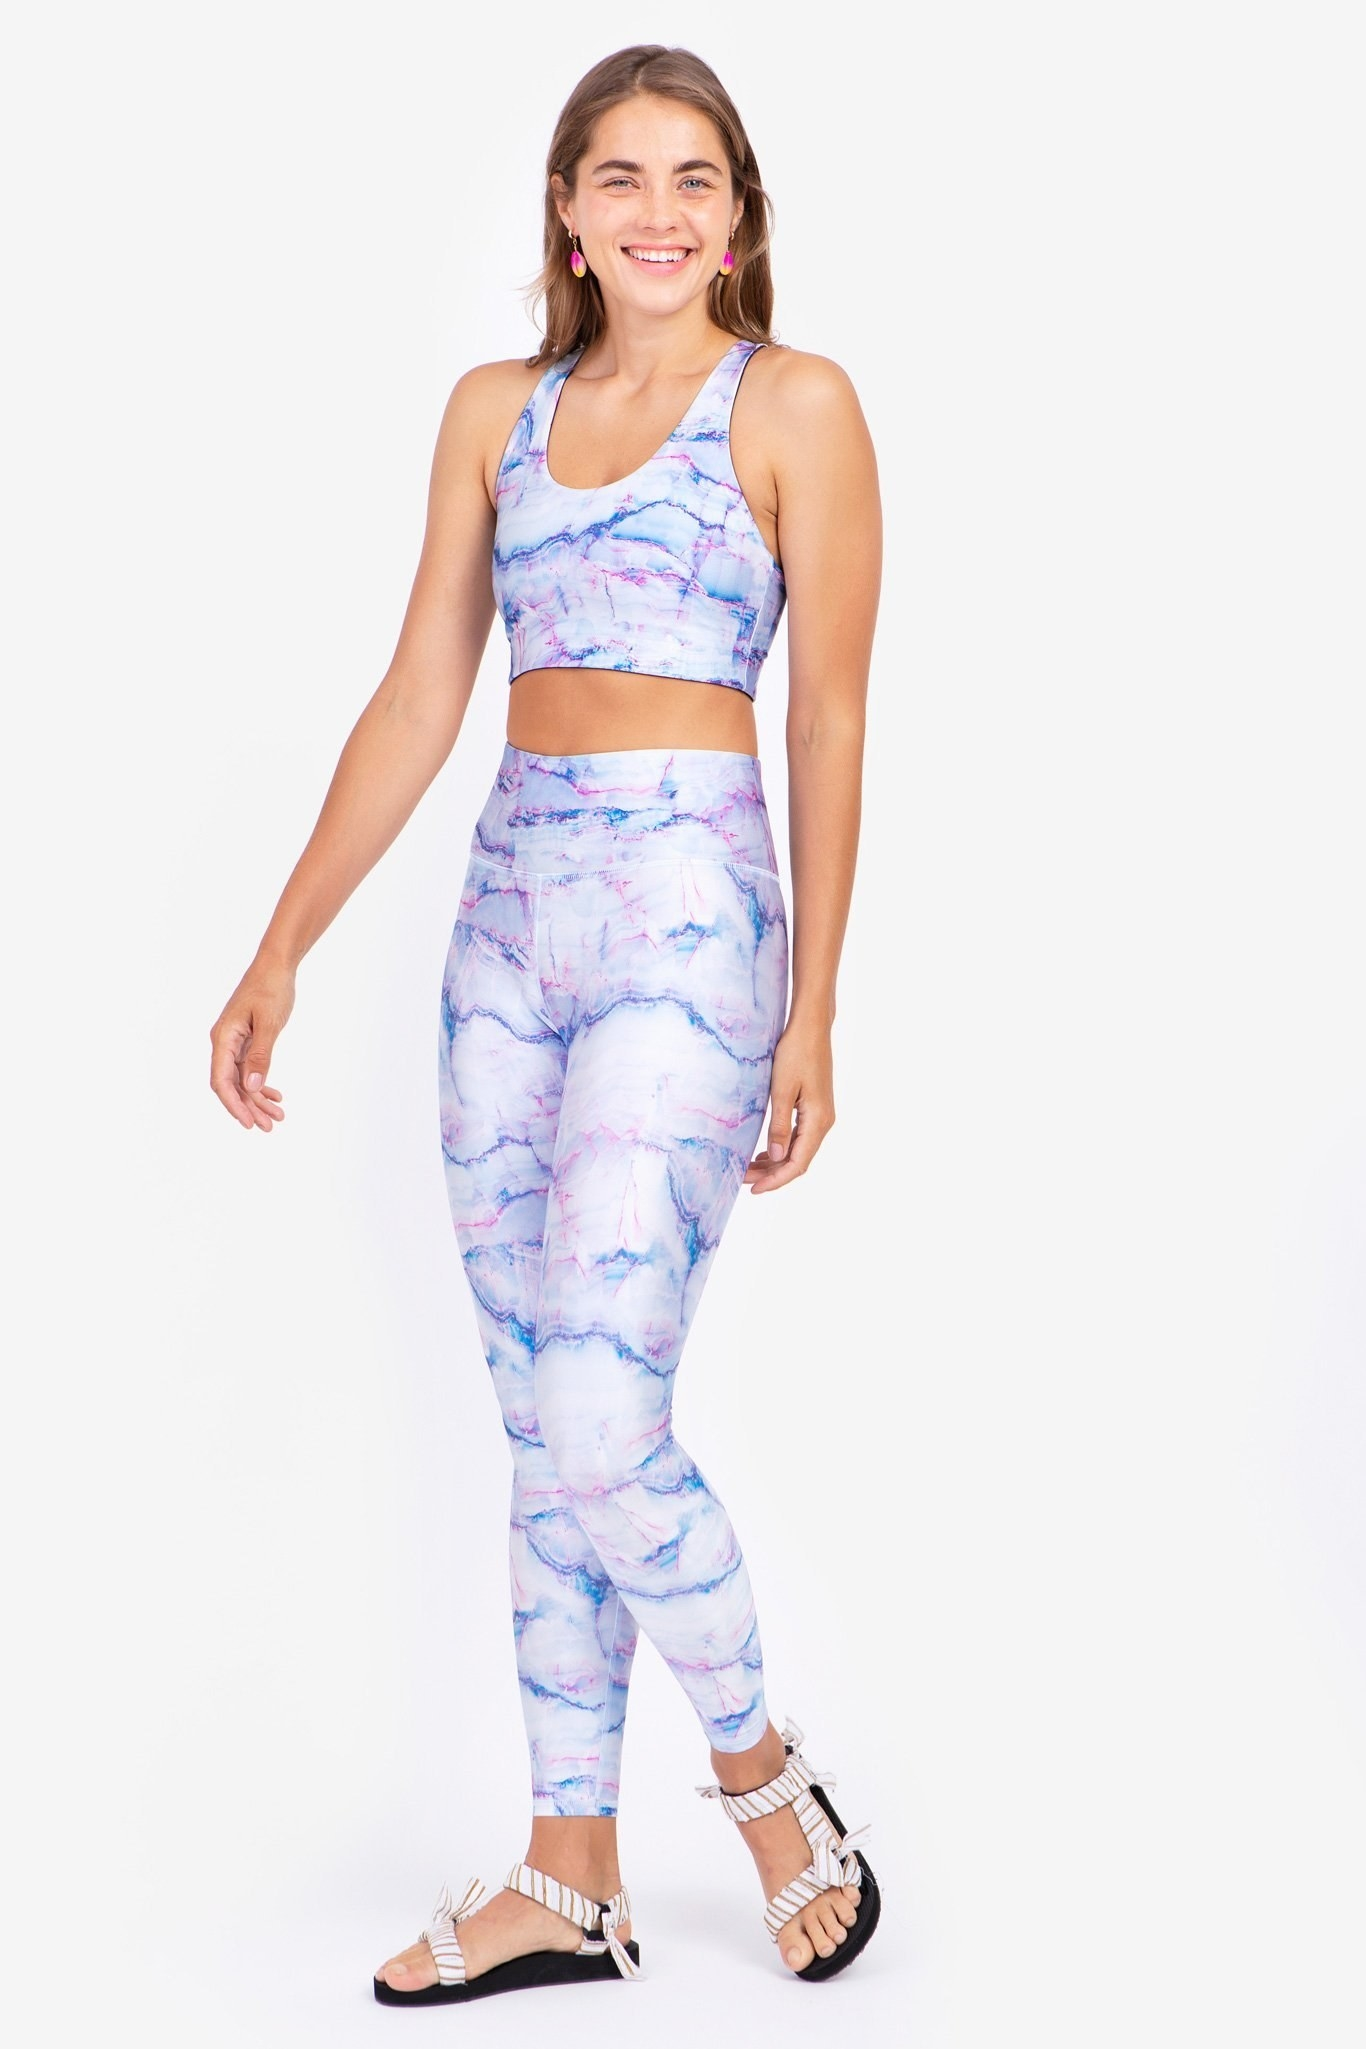 Model wearing the full-length high-waisted leggings with a blue and pink marble-like pattern all over them.